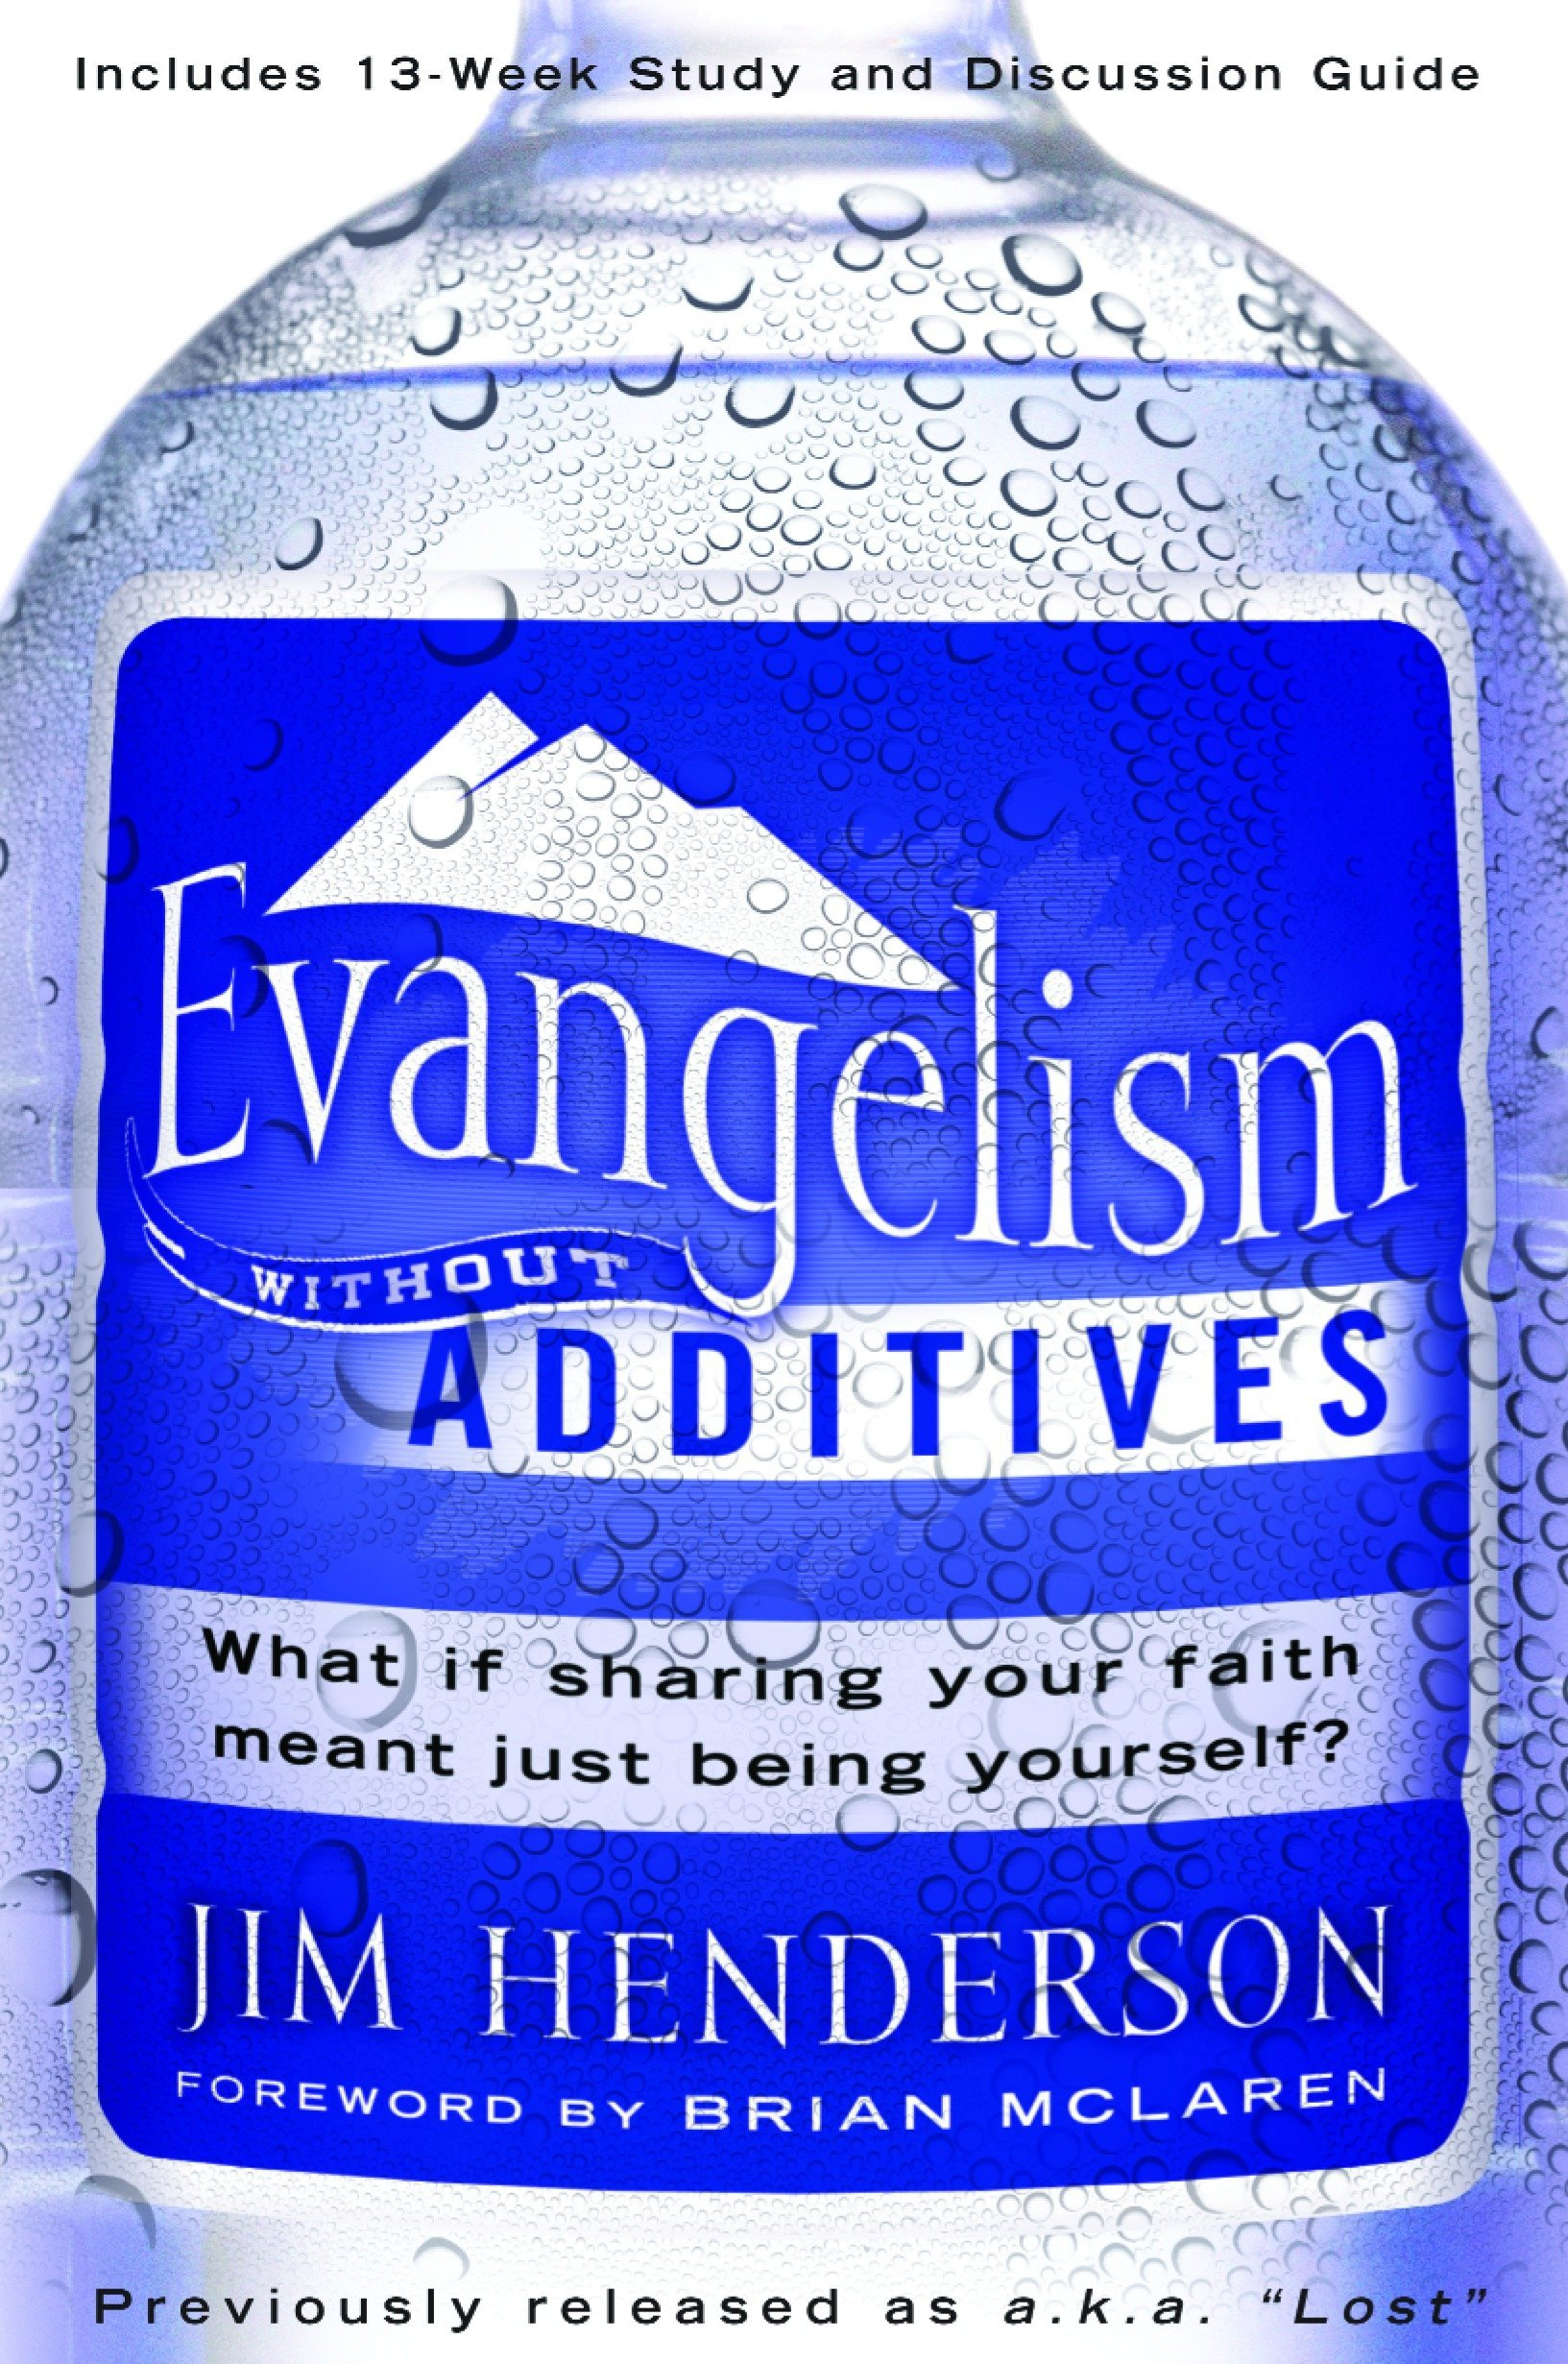 Evangelism Without Additives: What if sharing your faith meant just being yourself? PDF